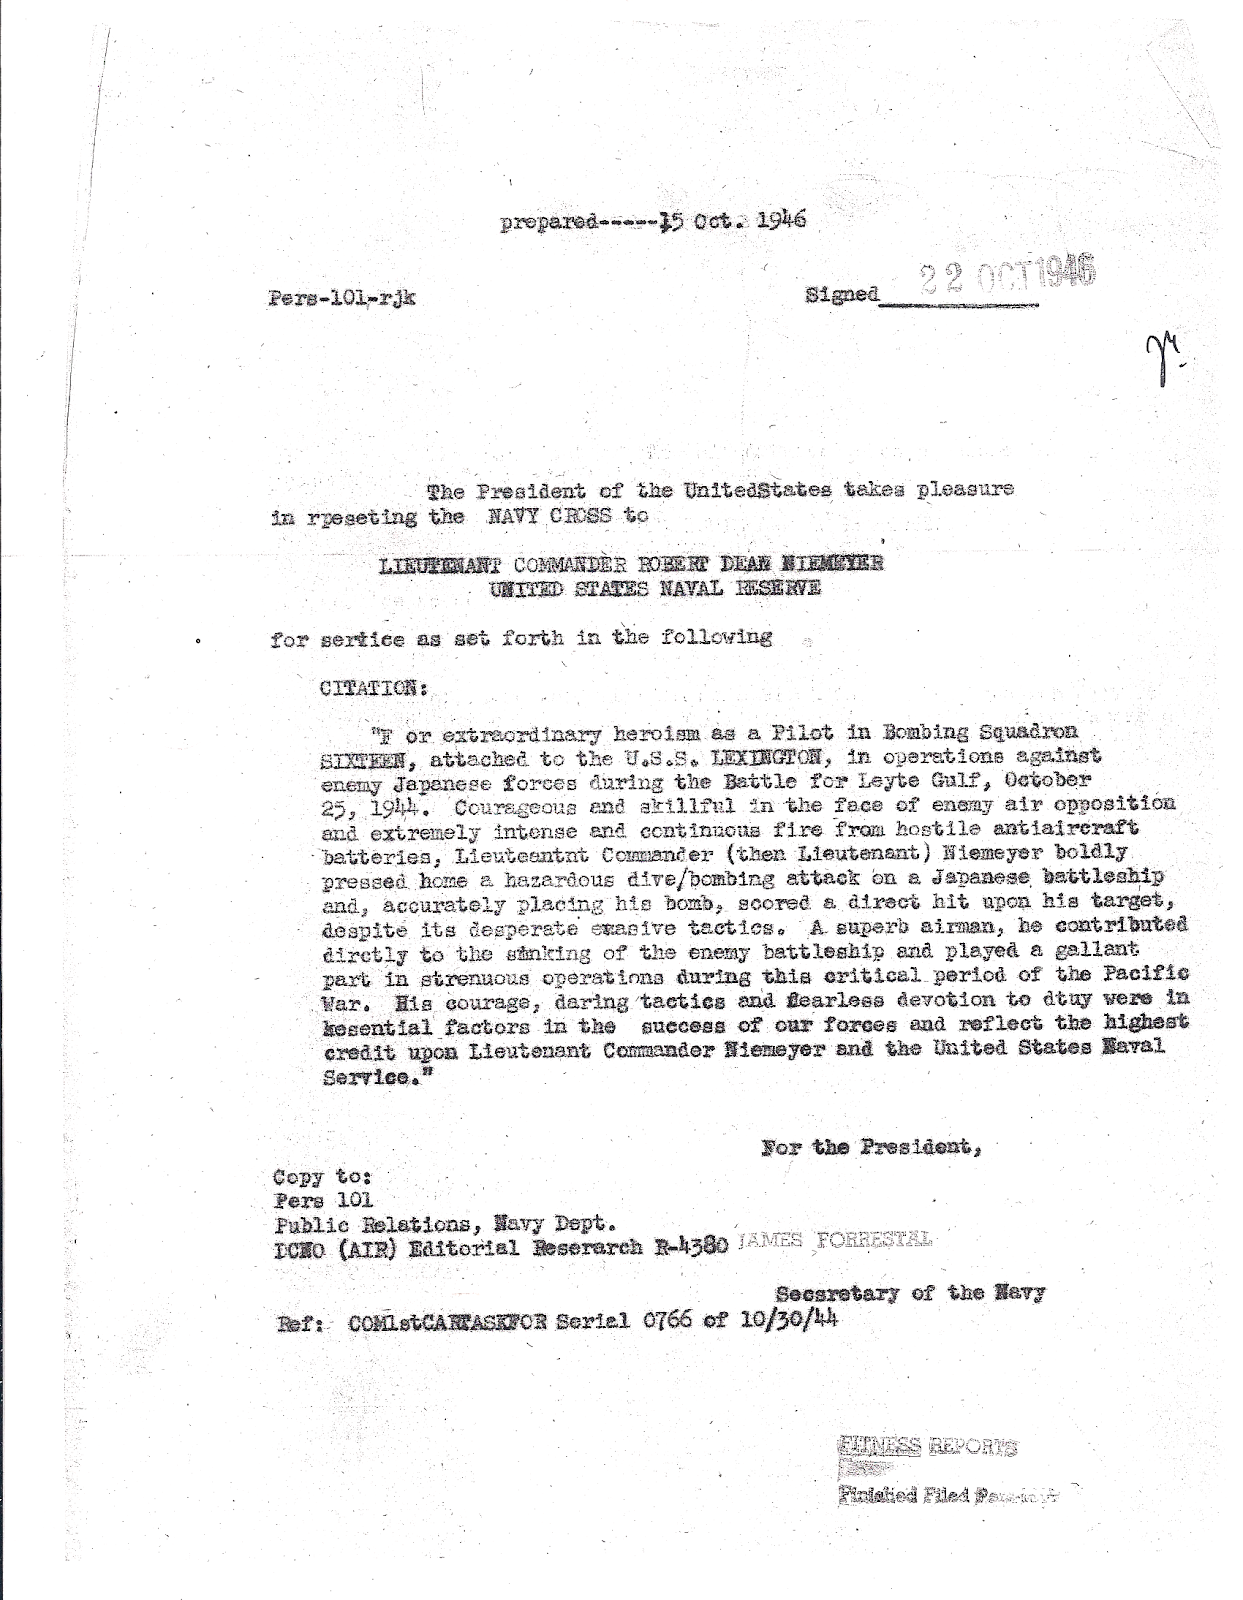 Robert D Niemeyer Navy Cross Citation 22 Oct 1946.png